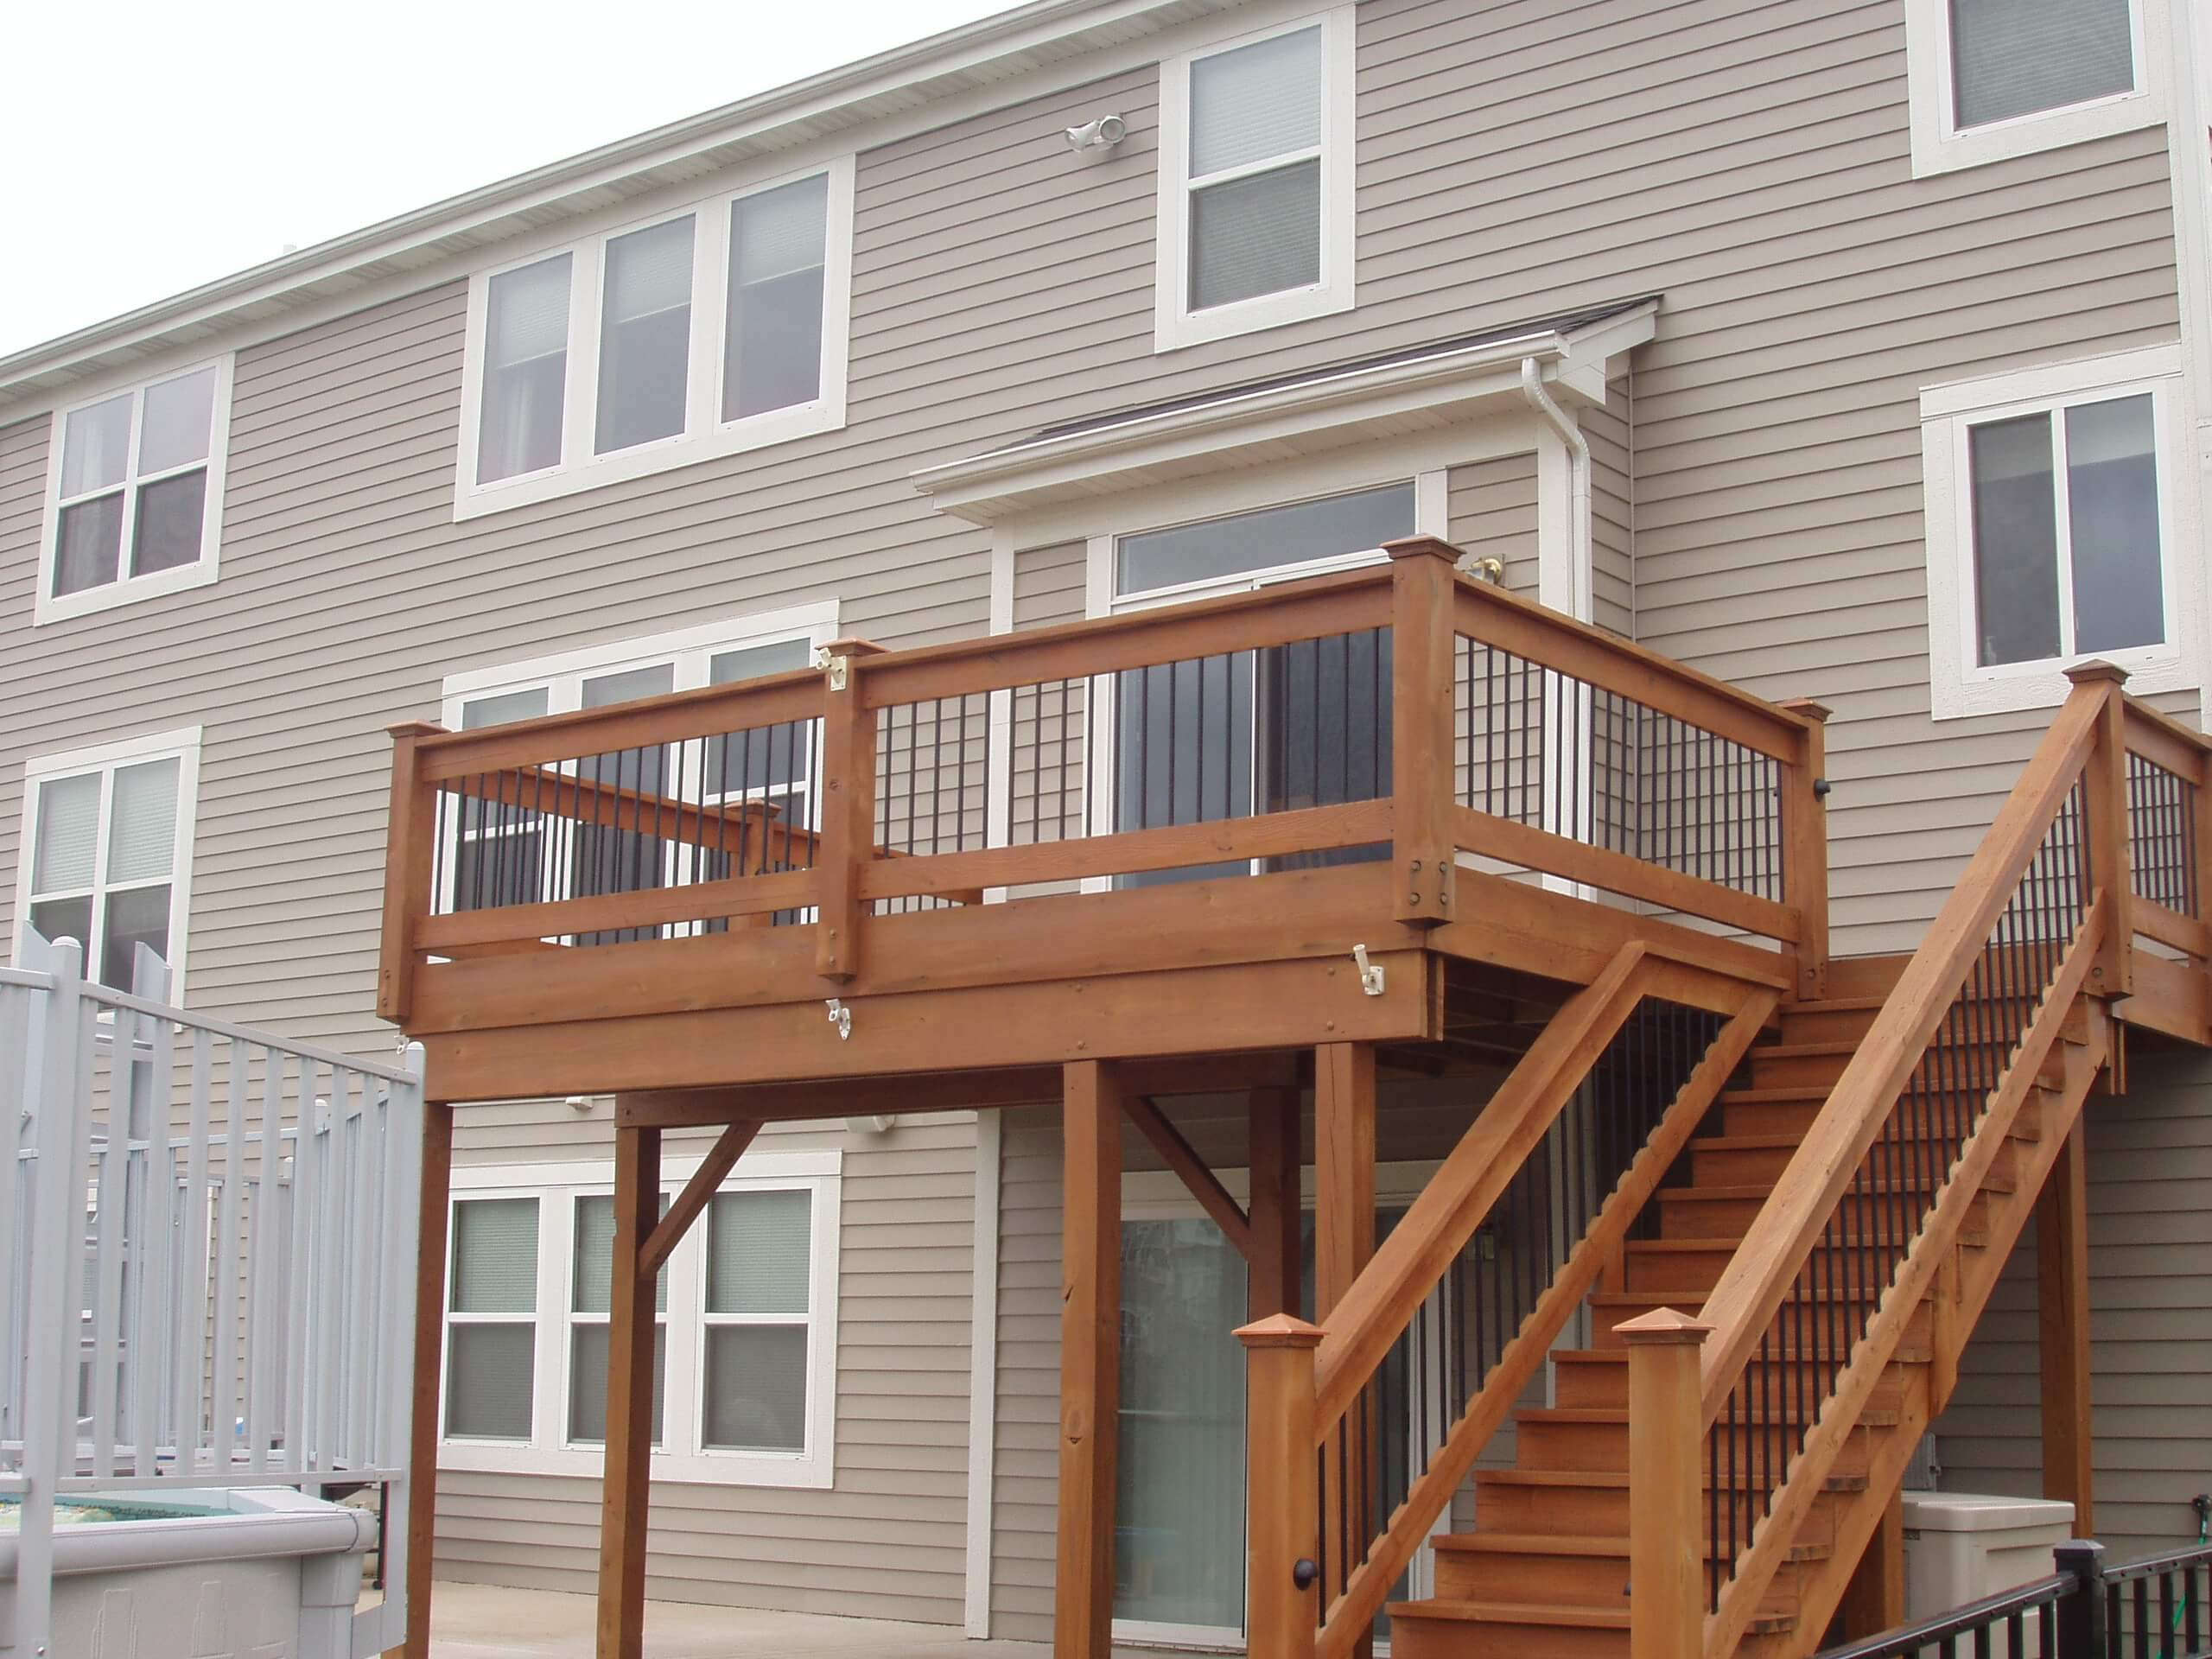 Raised deck with metal spindles that was recently cleaned, sanded, stained and sealed with a transparent cedar stain.